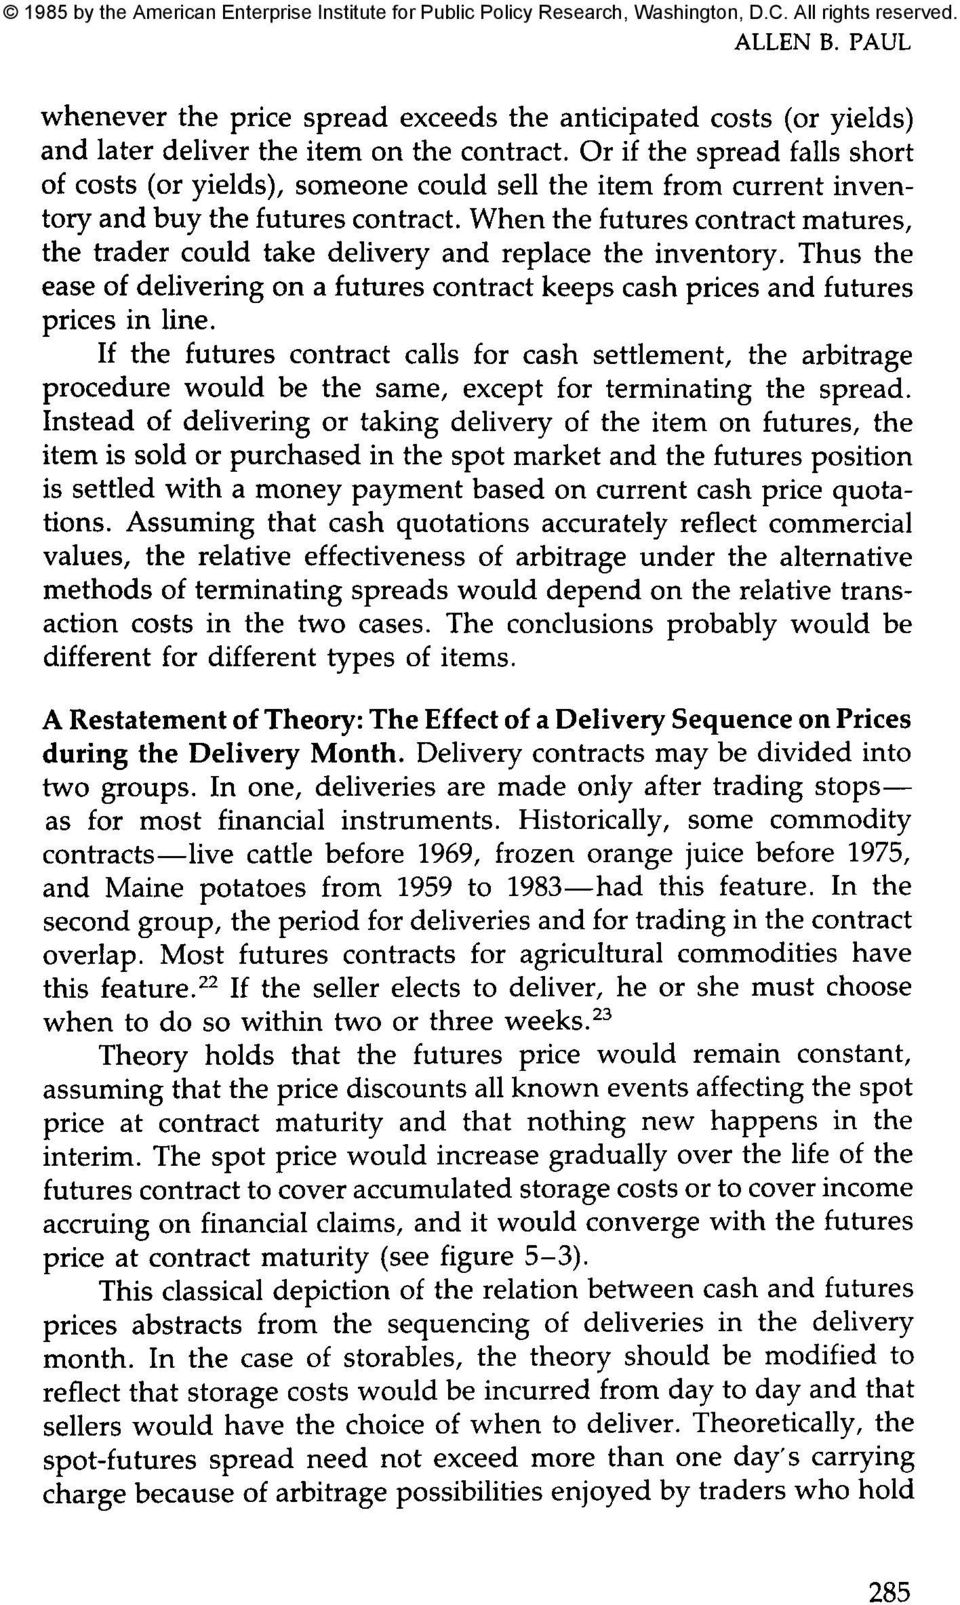 When the futures contract matures, the trader could take delivery and replace the inventory. Thus the ease of delivering on a futures contract keeps cash prices and futures prices in line.